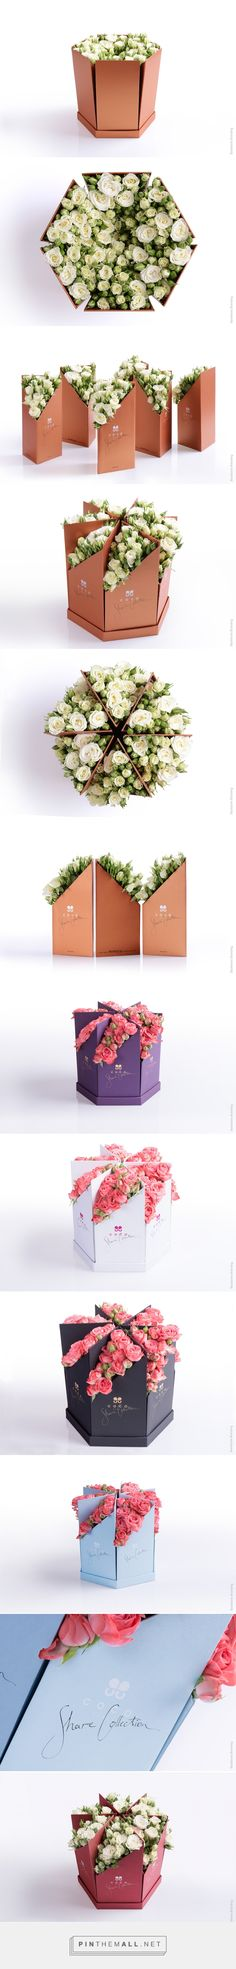 "Calligraphy, graphic design and packaging for Coco Fiori ""Share Collection"" on Behance by Backbone Branding Yervan, Armenia curated by Packaging Diva PD. A big bouquet of flowers which you can share into parts and present a piece of beauty to the people y Flower Packaging, Cool Packaging, Brand Packaging, Design Packaging, Packaging Ideas, Big Bouquet Of Flowers, Bouquet Box, Fleur Design, Packaging Design Inspiration"